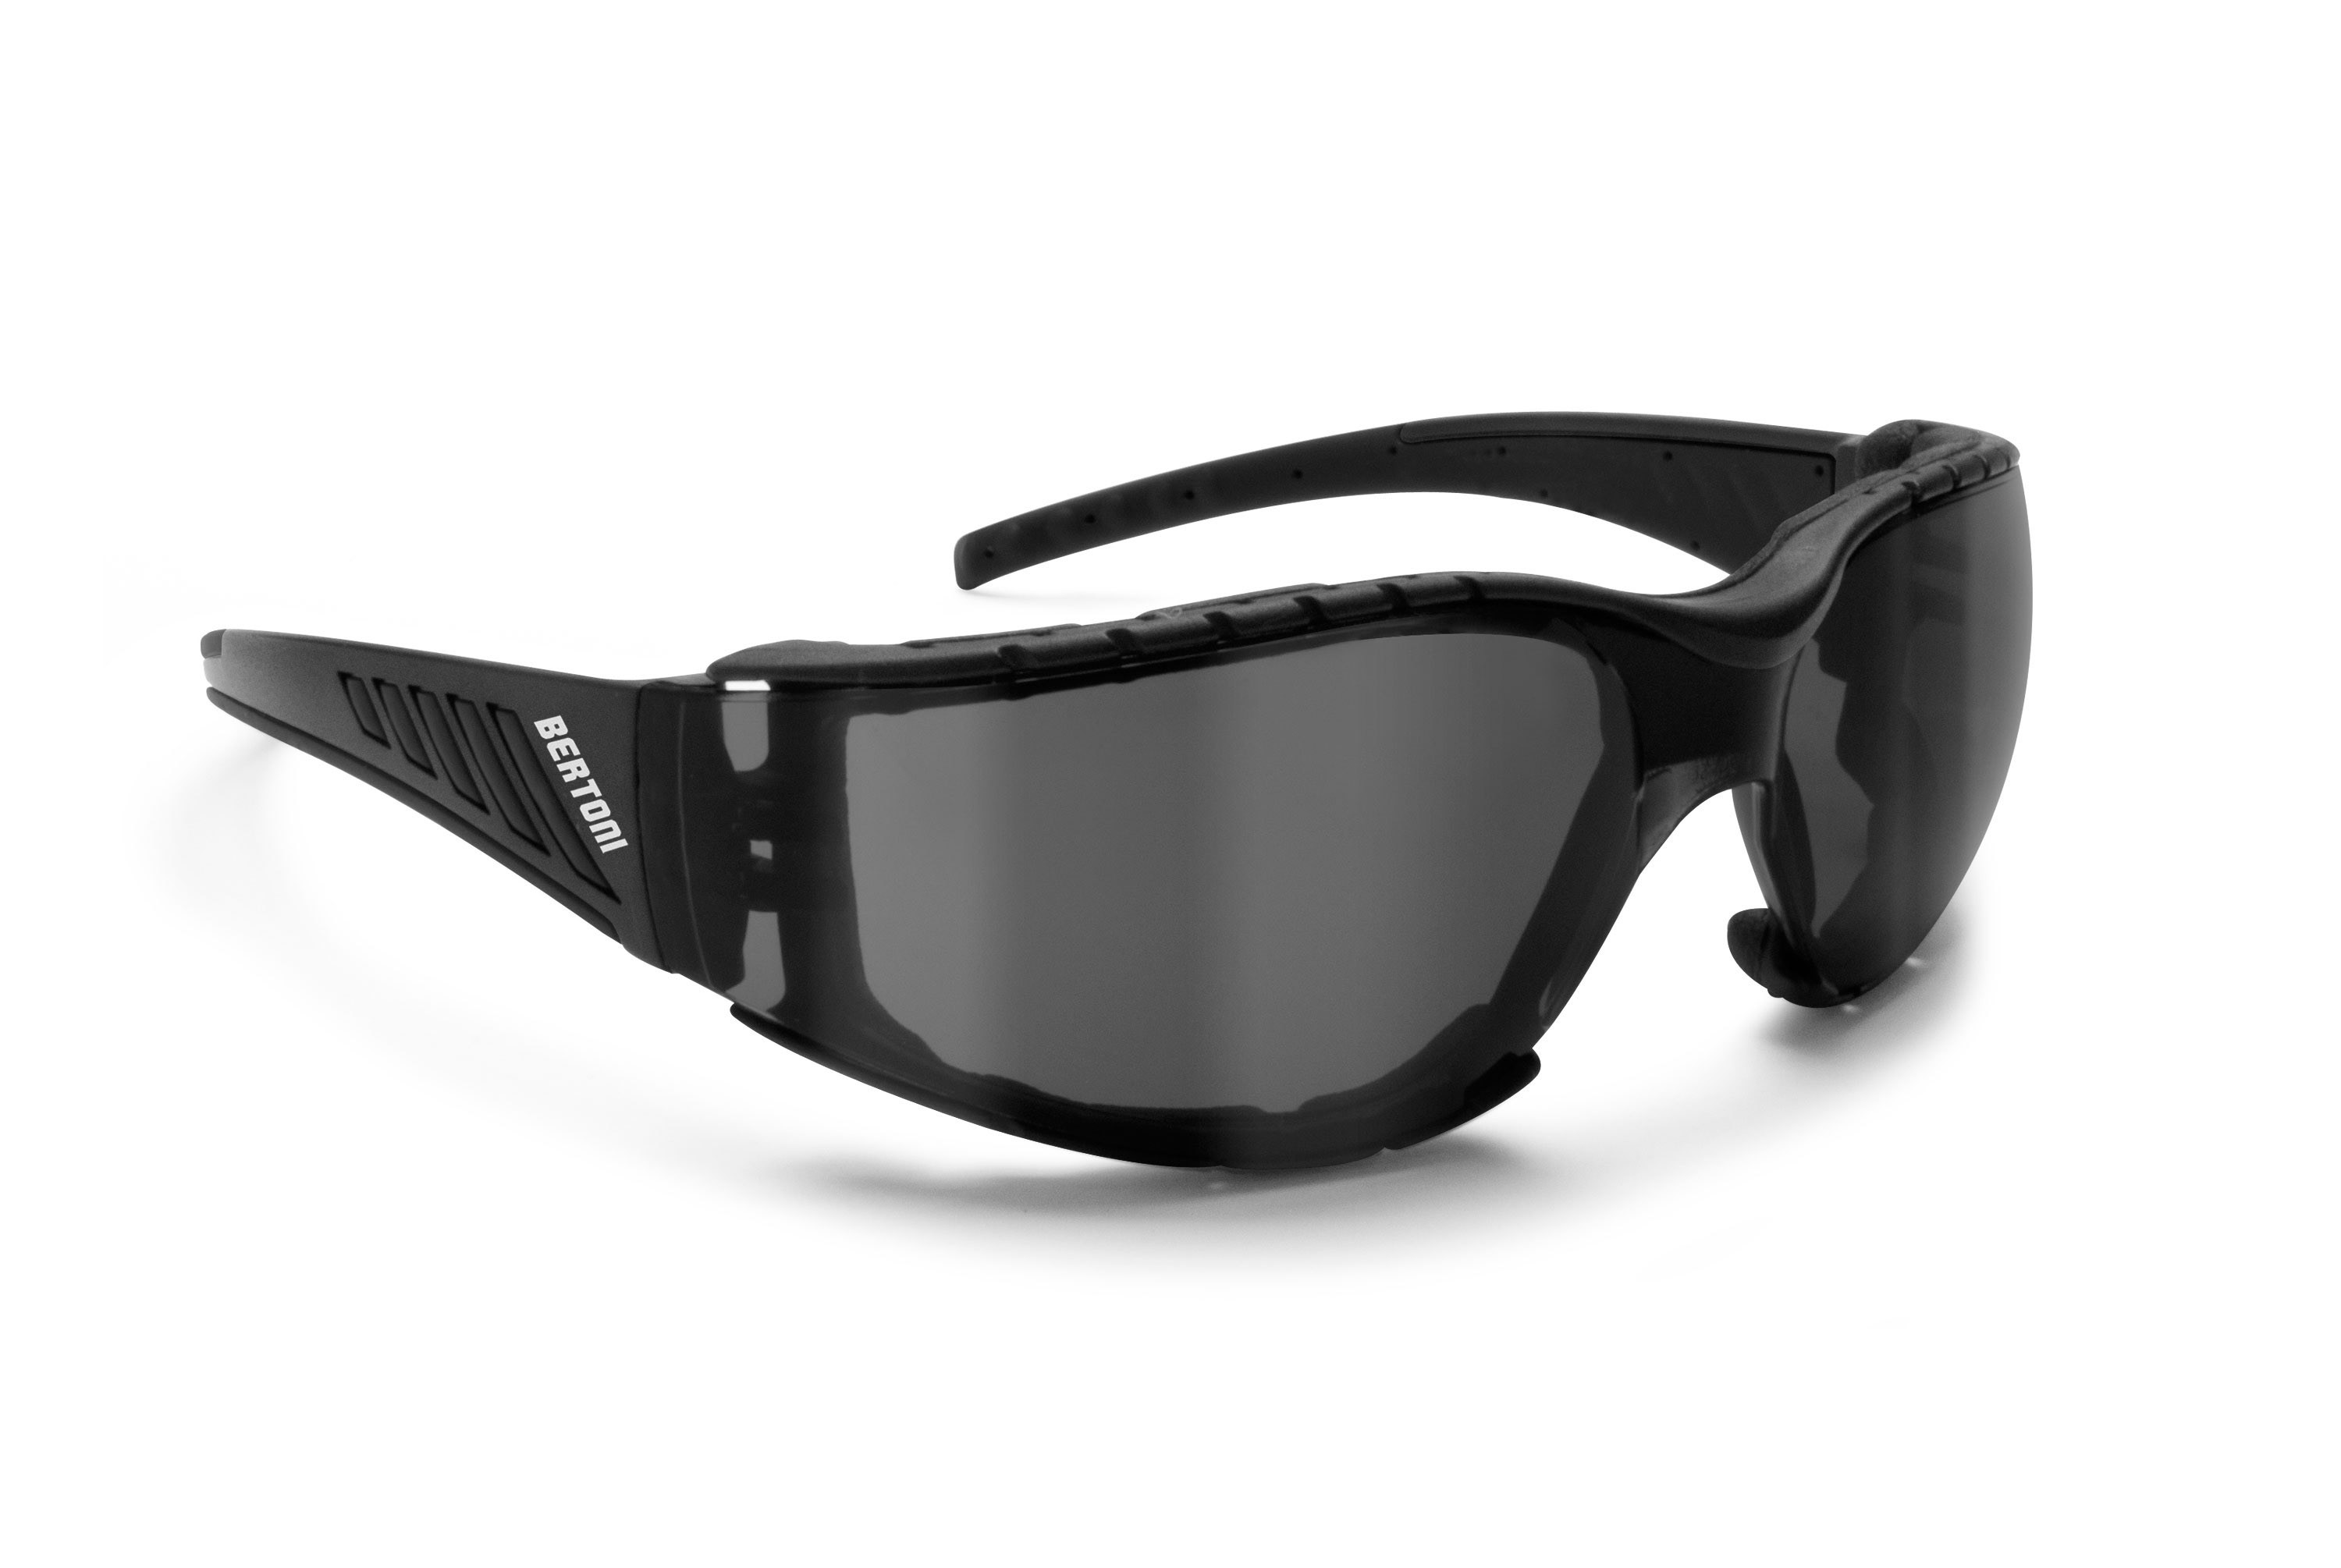 Antifog Motorcycle Sunglasses with Smoke Lenses AF149C